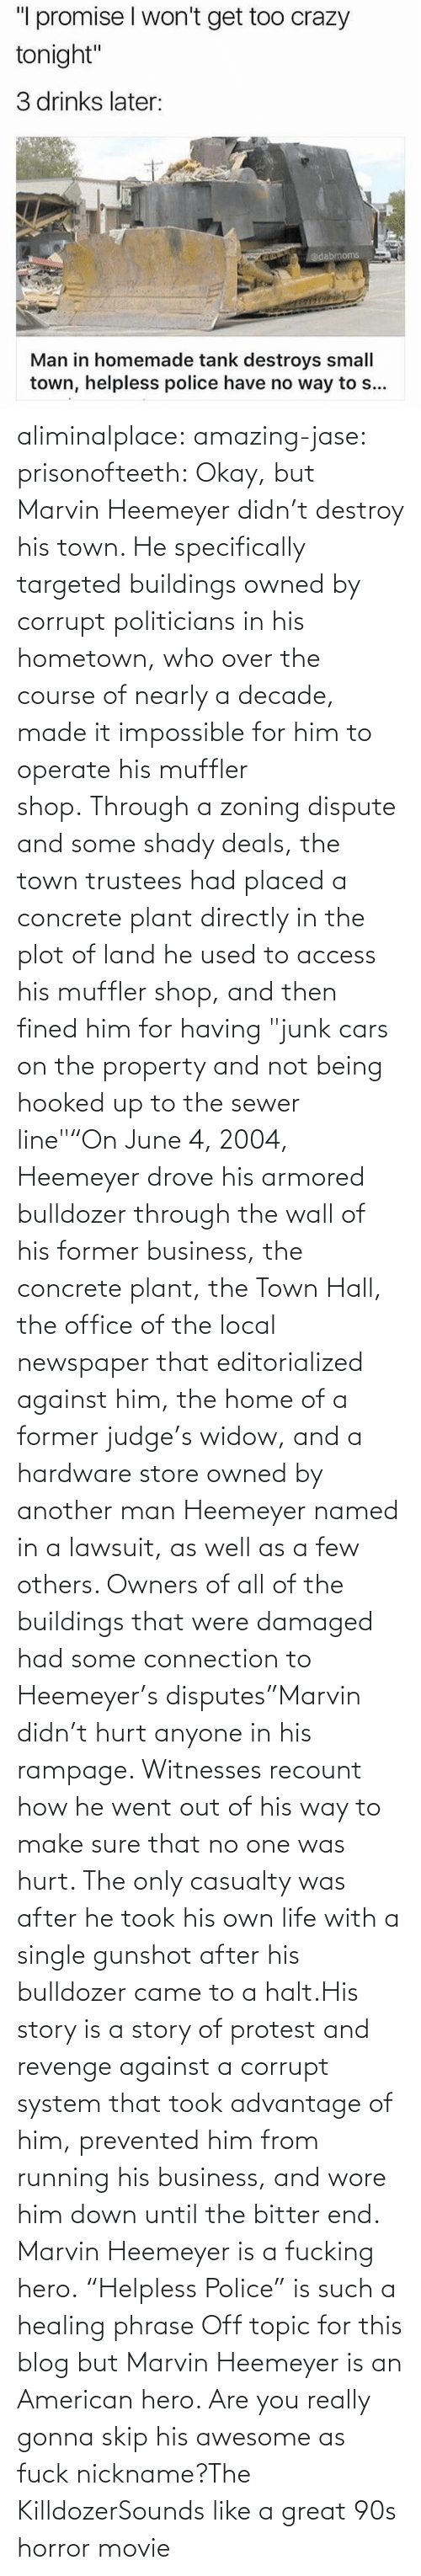 "All Of: aliminalplace: amazing-jase:  prisonofteeth: Okay, but Marvin Heemeyer didn't destroy his town. He specifically targeted buildings owned by corrupt politicians in his hometown, who over the course of nearly a decade, made it impossible for him to operate his muffler shop. Through a zoning dispute and some shady deals, the town trustees had placed a concrete plant directly in the plot of land he used to access his muffler shop, and then fined him for having ""junk cars on the property and not being hooked up to the sewer line""""On June 4, 2004, Heemeyer drove his armored bulldozer through the wall of his former business, the concrete plant, the Town Hall, the office of the local newspaper that editorialized against him, the home of a former judge's widow, and a hardware store owned by another man Heemeyer named in a lawsuit, as well as a few others. Owners of all of the buildings that were damaged had some connection to Heemeyer's disputes""Marvin didn't hurt anyone in his rampage. Witnesses recount how he went out of his way to make sure that no one was hurt. The only casualty was after he took his own life with a single gunshot after his bulldozer came to a halt.His story is a story of protest and revenge against a corrupt system that took advantage of him, prevented him from running his business, and wore him down until the bitter end. Marvin Heemeyer is a fucking hero. ""Helpless Police"" is such a healing phrase    Off topic for this blog but Marvin Heemeyer is an American hero.     Are you really gonna skip his awesome as fuck nickname?The KilldozerSounds like a great 90s horror movie"